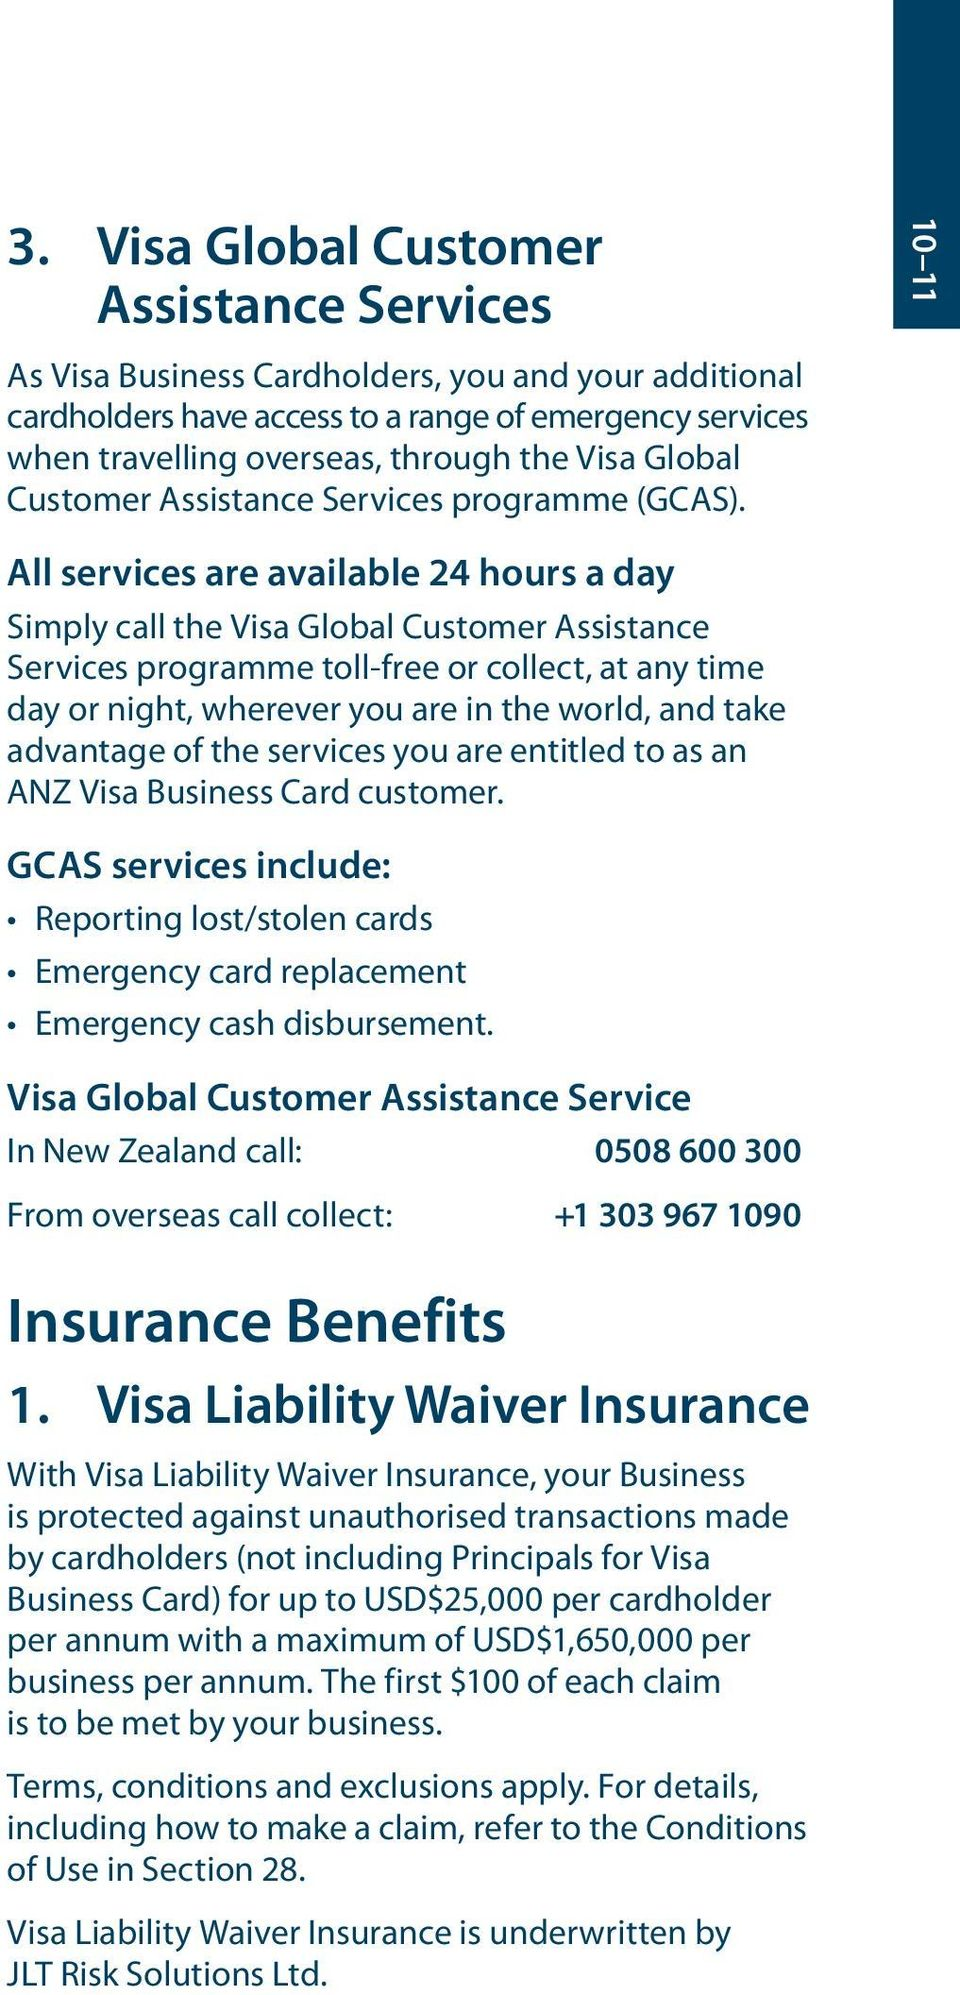 All services are available 24 hours a day Simply call the Visa Global Customer Assistance Services programme toll-free or collect, at any time day or night, wherever you are in the world, and take